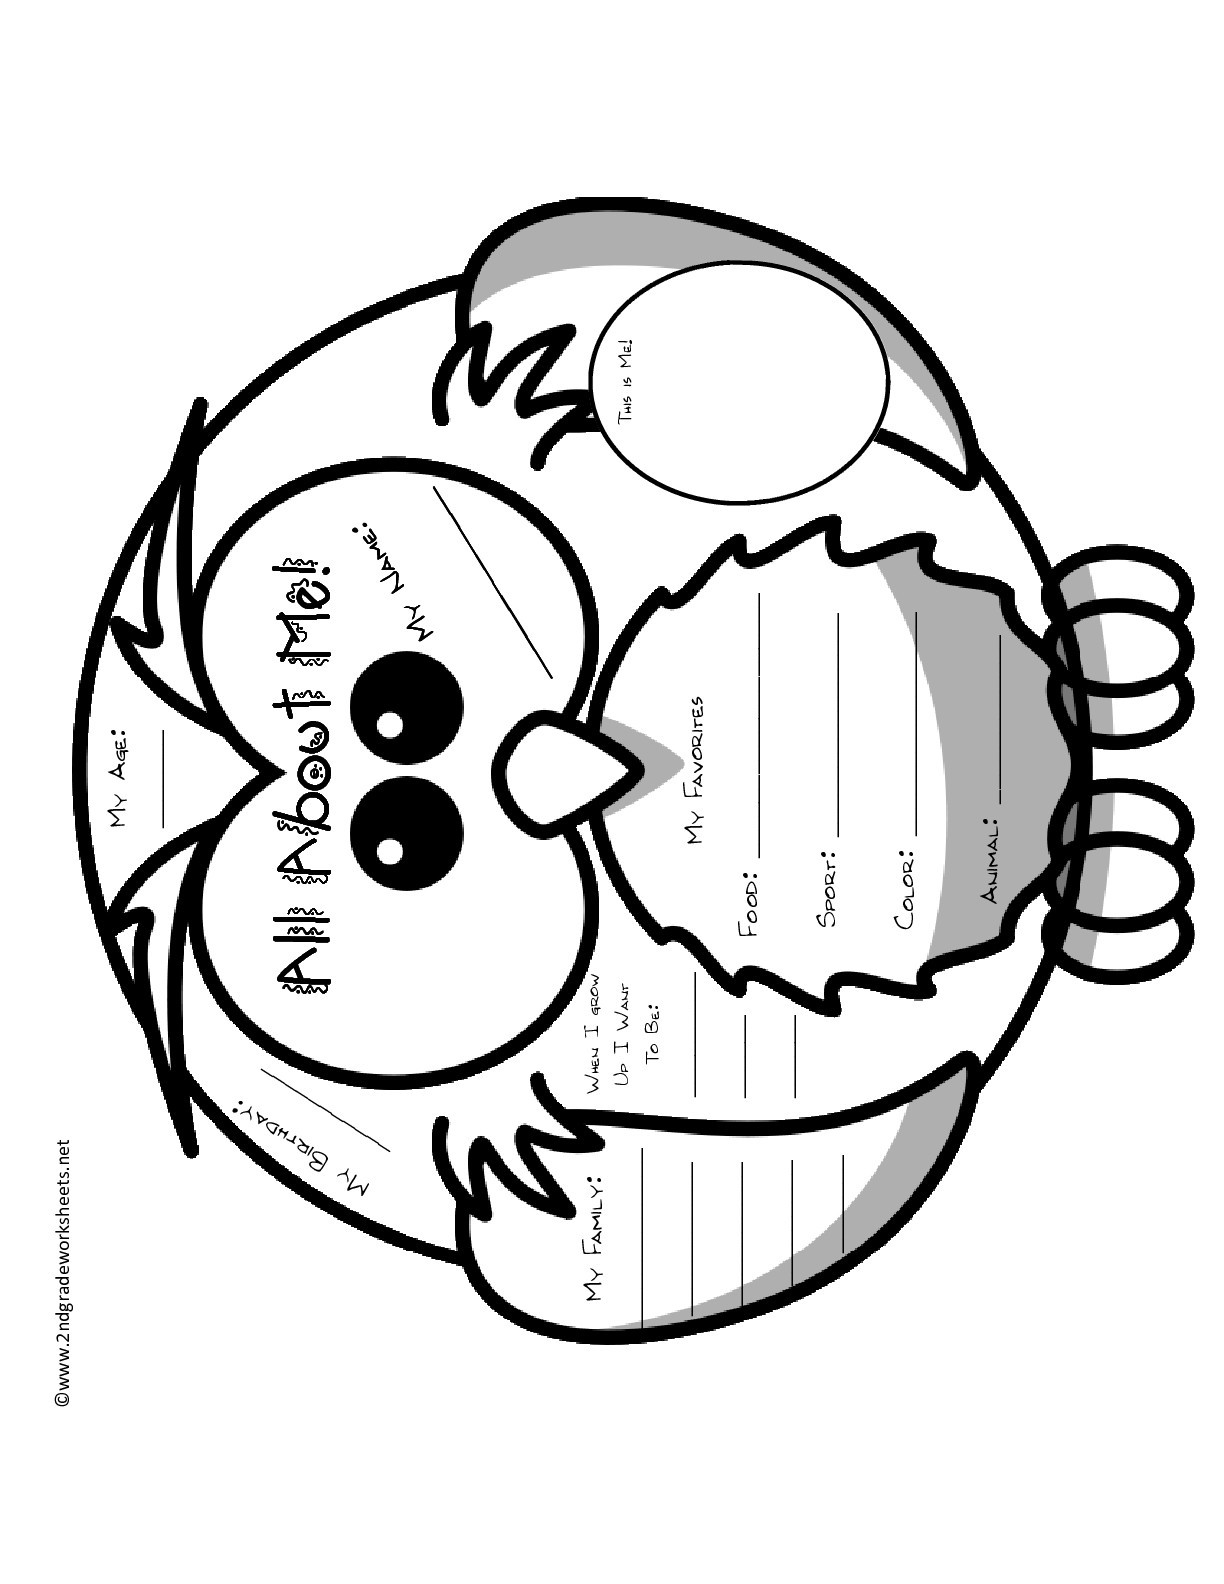 hight resolution of 5 Animals Worksheets for Grade 1 - apocalomegaproductions.com